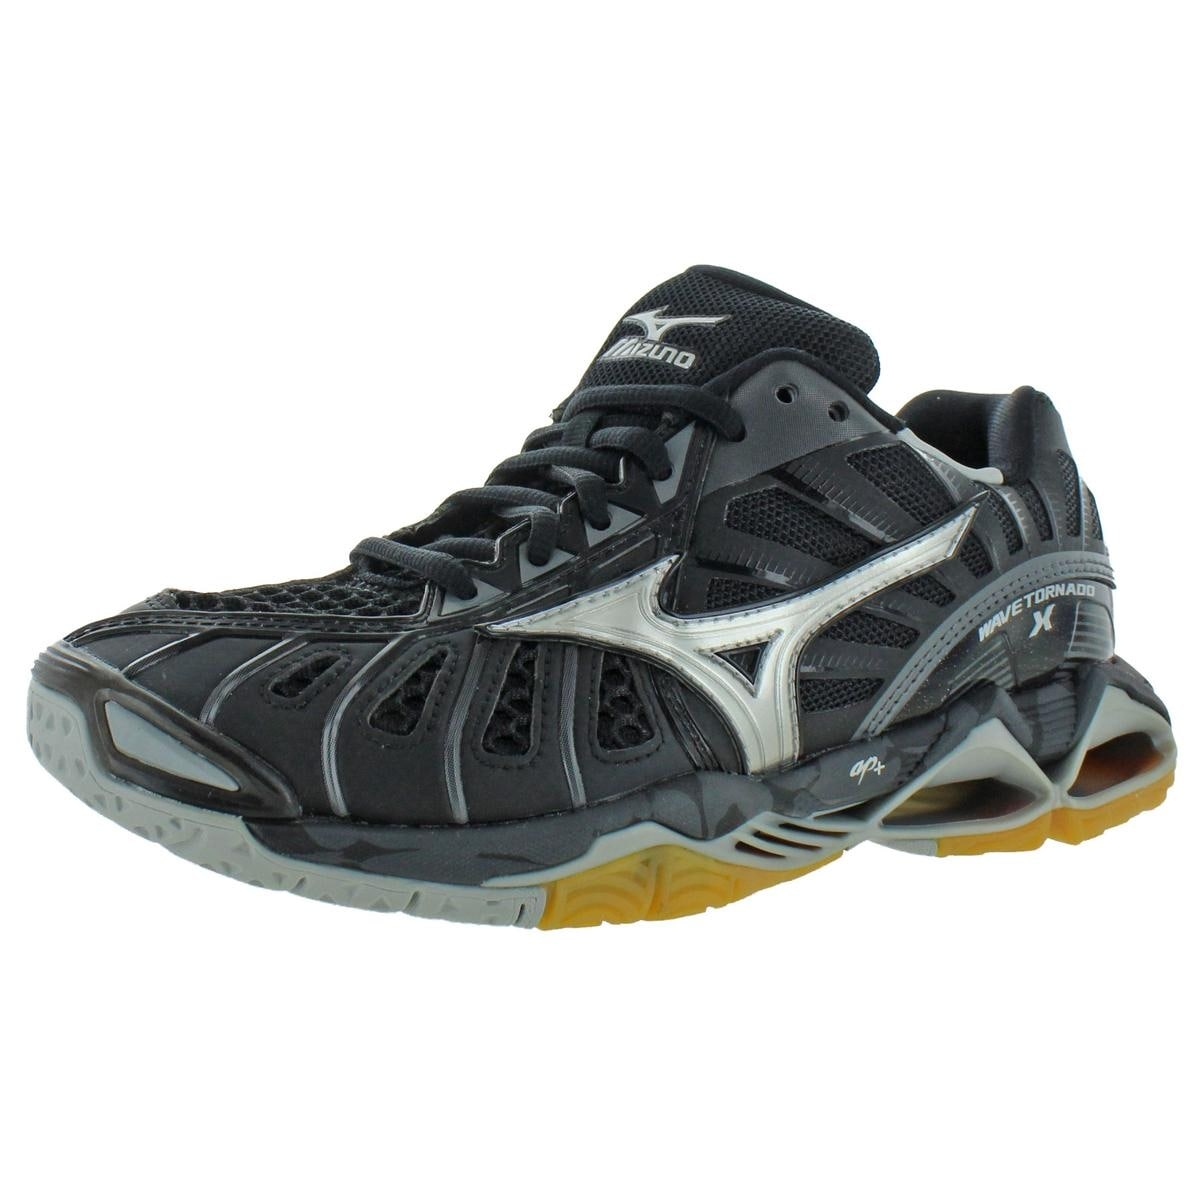 9824a7eaf284 Shop Mizuno Womens Wave Tornado X Volleyball Shoes SR Touch Cushioned -  Free Shipping Today - Overstock - 27985512